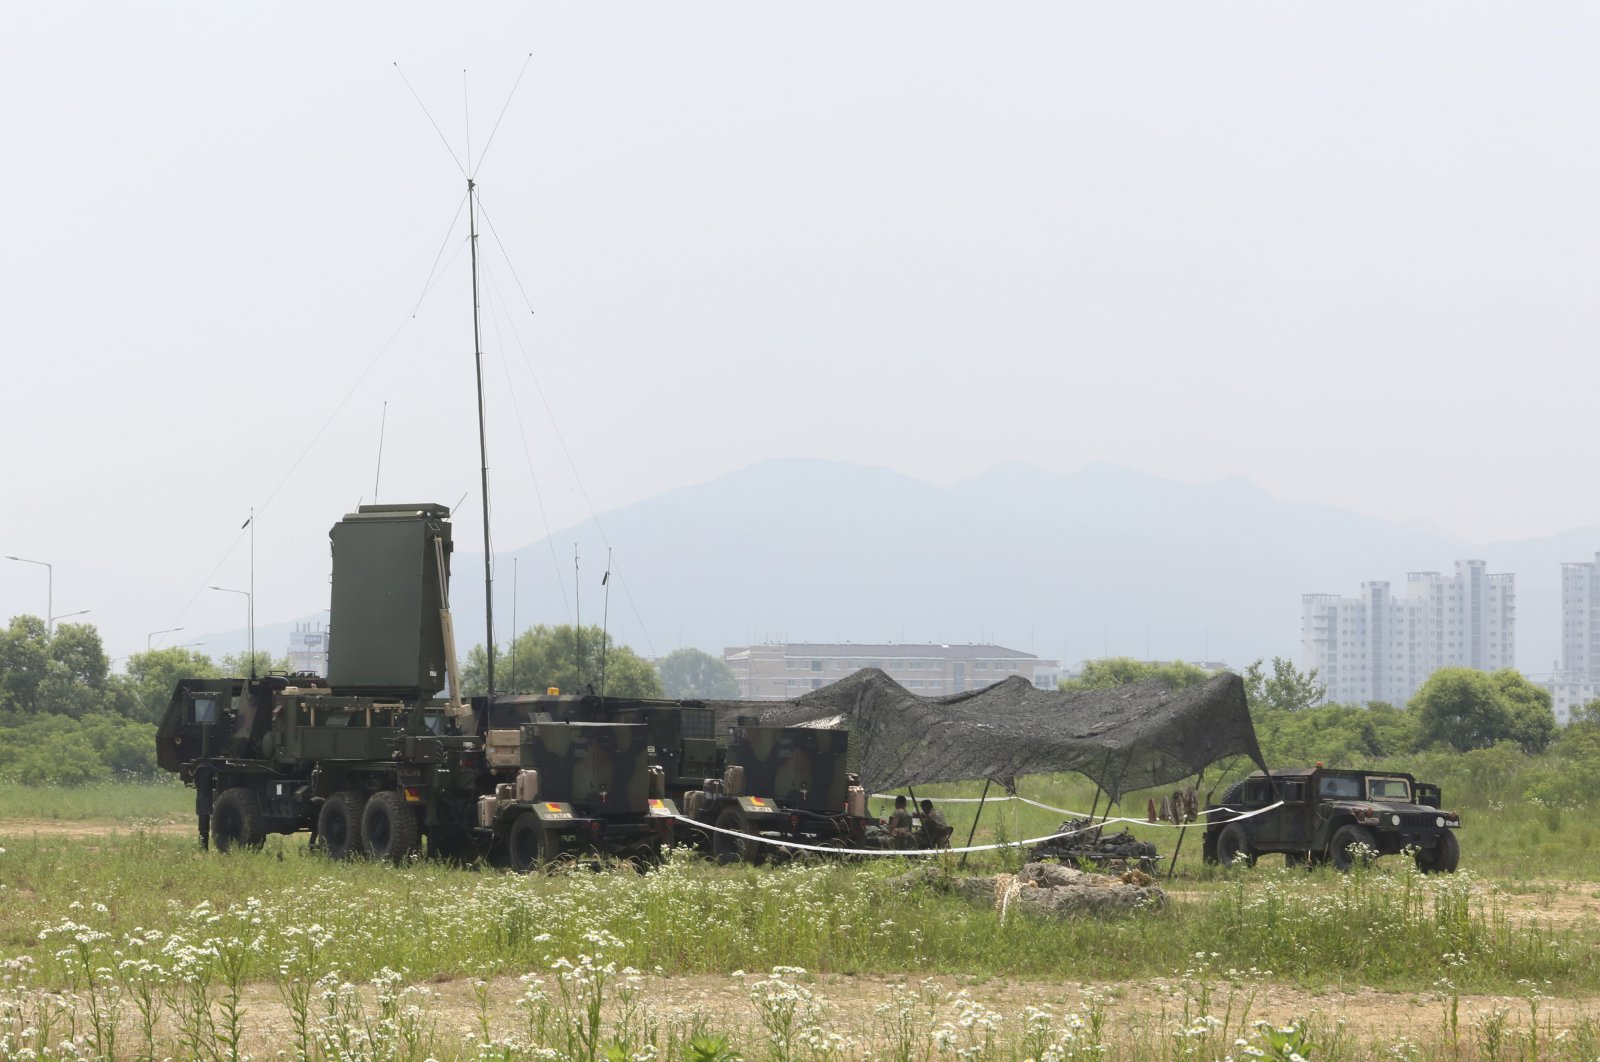 U.S. Army equipment is displayed in Yeoncheon, South Korea, near the border with North Korea, June 17, 2020.  (AP Photo)